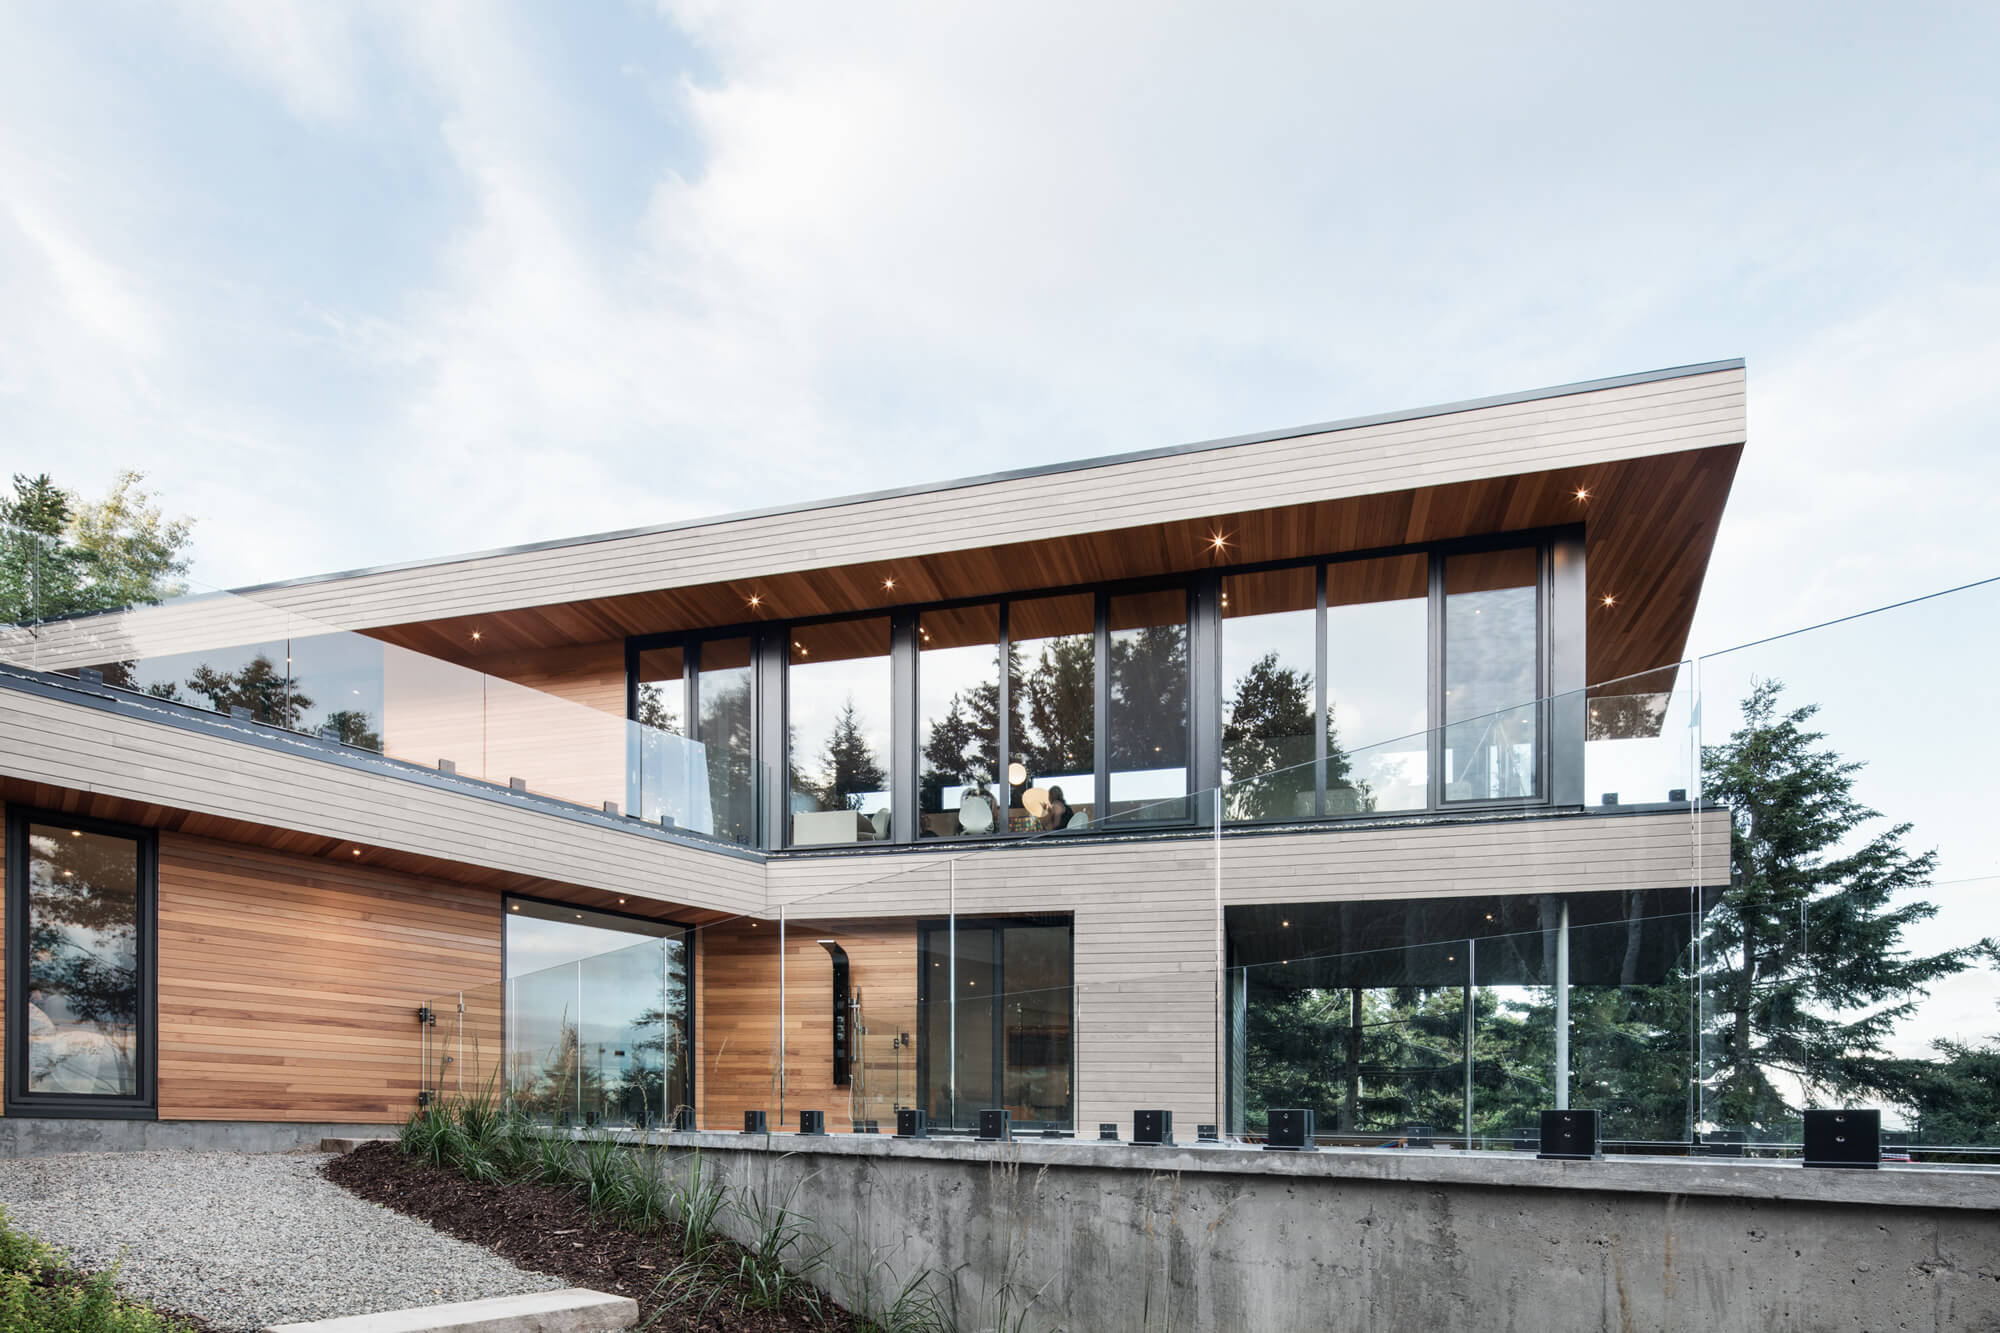 370_BOURGEOIS-LECHASSEUR-ARCHITECTES_RESIDENCE-ALTAIR_14